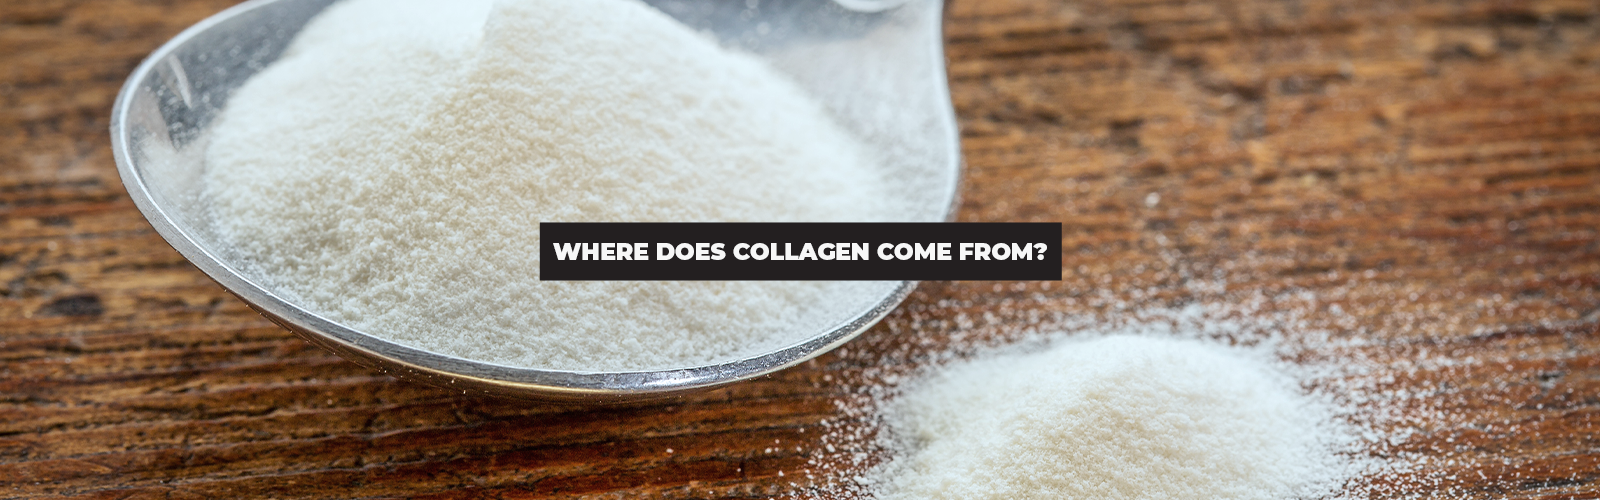 Where Does Collagen Come From? How Is It Made in the Body?